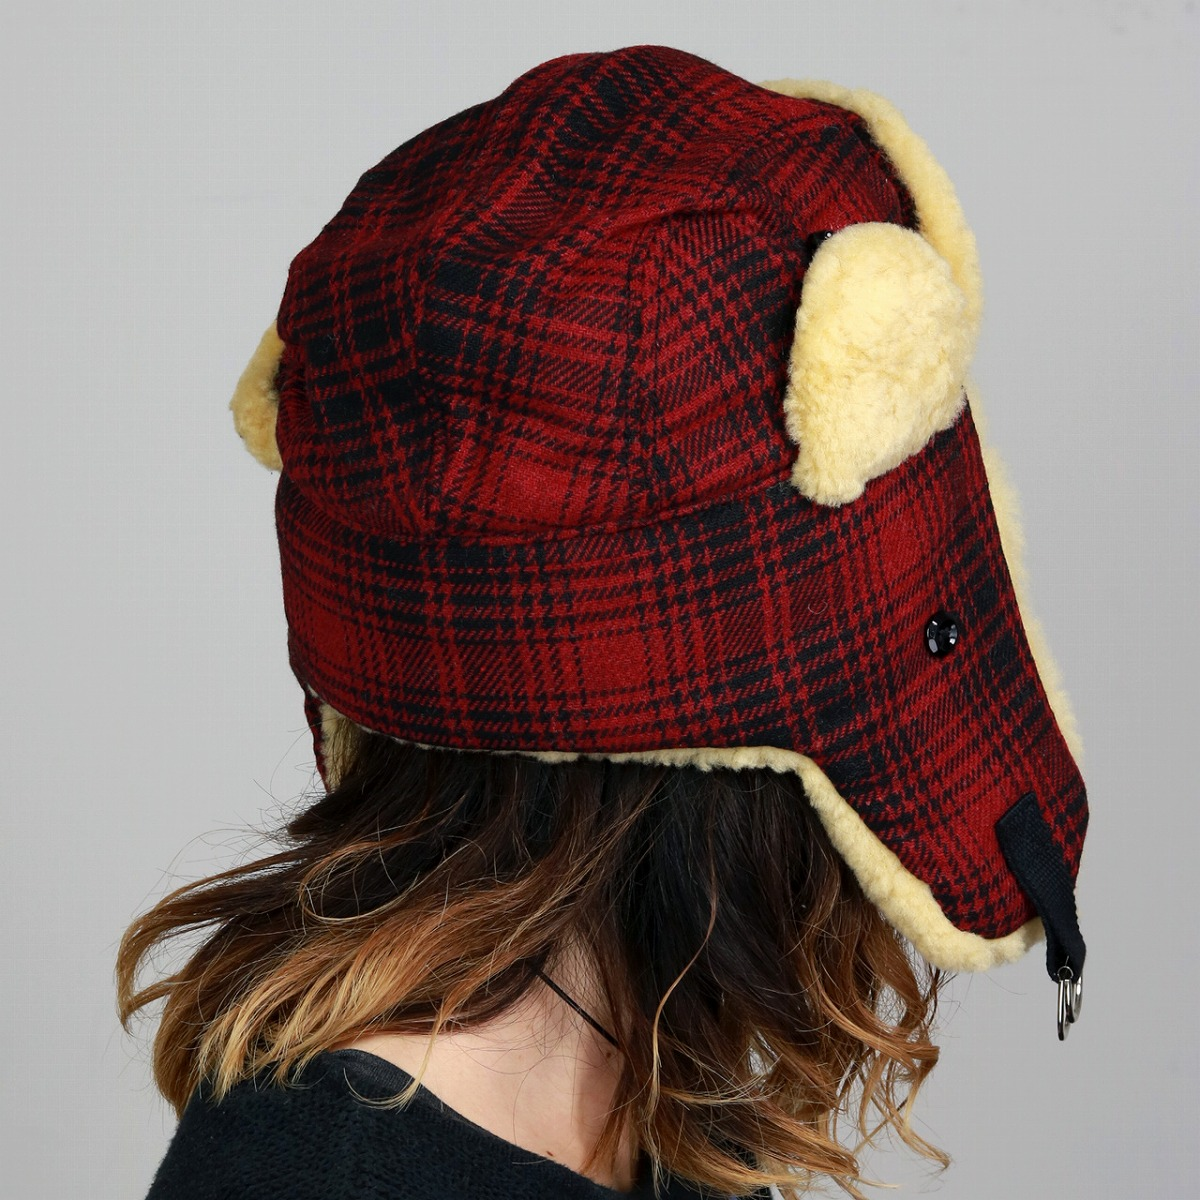 7f814c88165 Flight cap Lady s flight hat men checked pattern Woolrich sheep fur fur hat  Ulrich hat trapper cold protection unisex   check red red  flying cap  that  fur ...